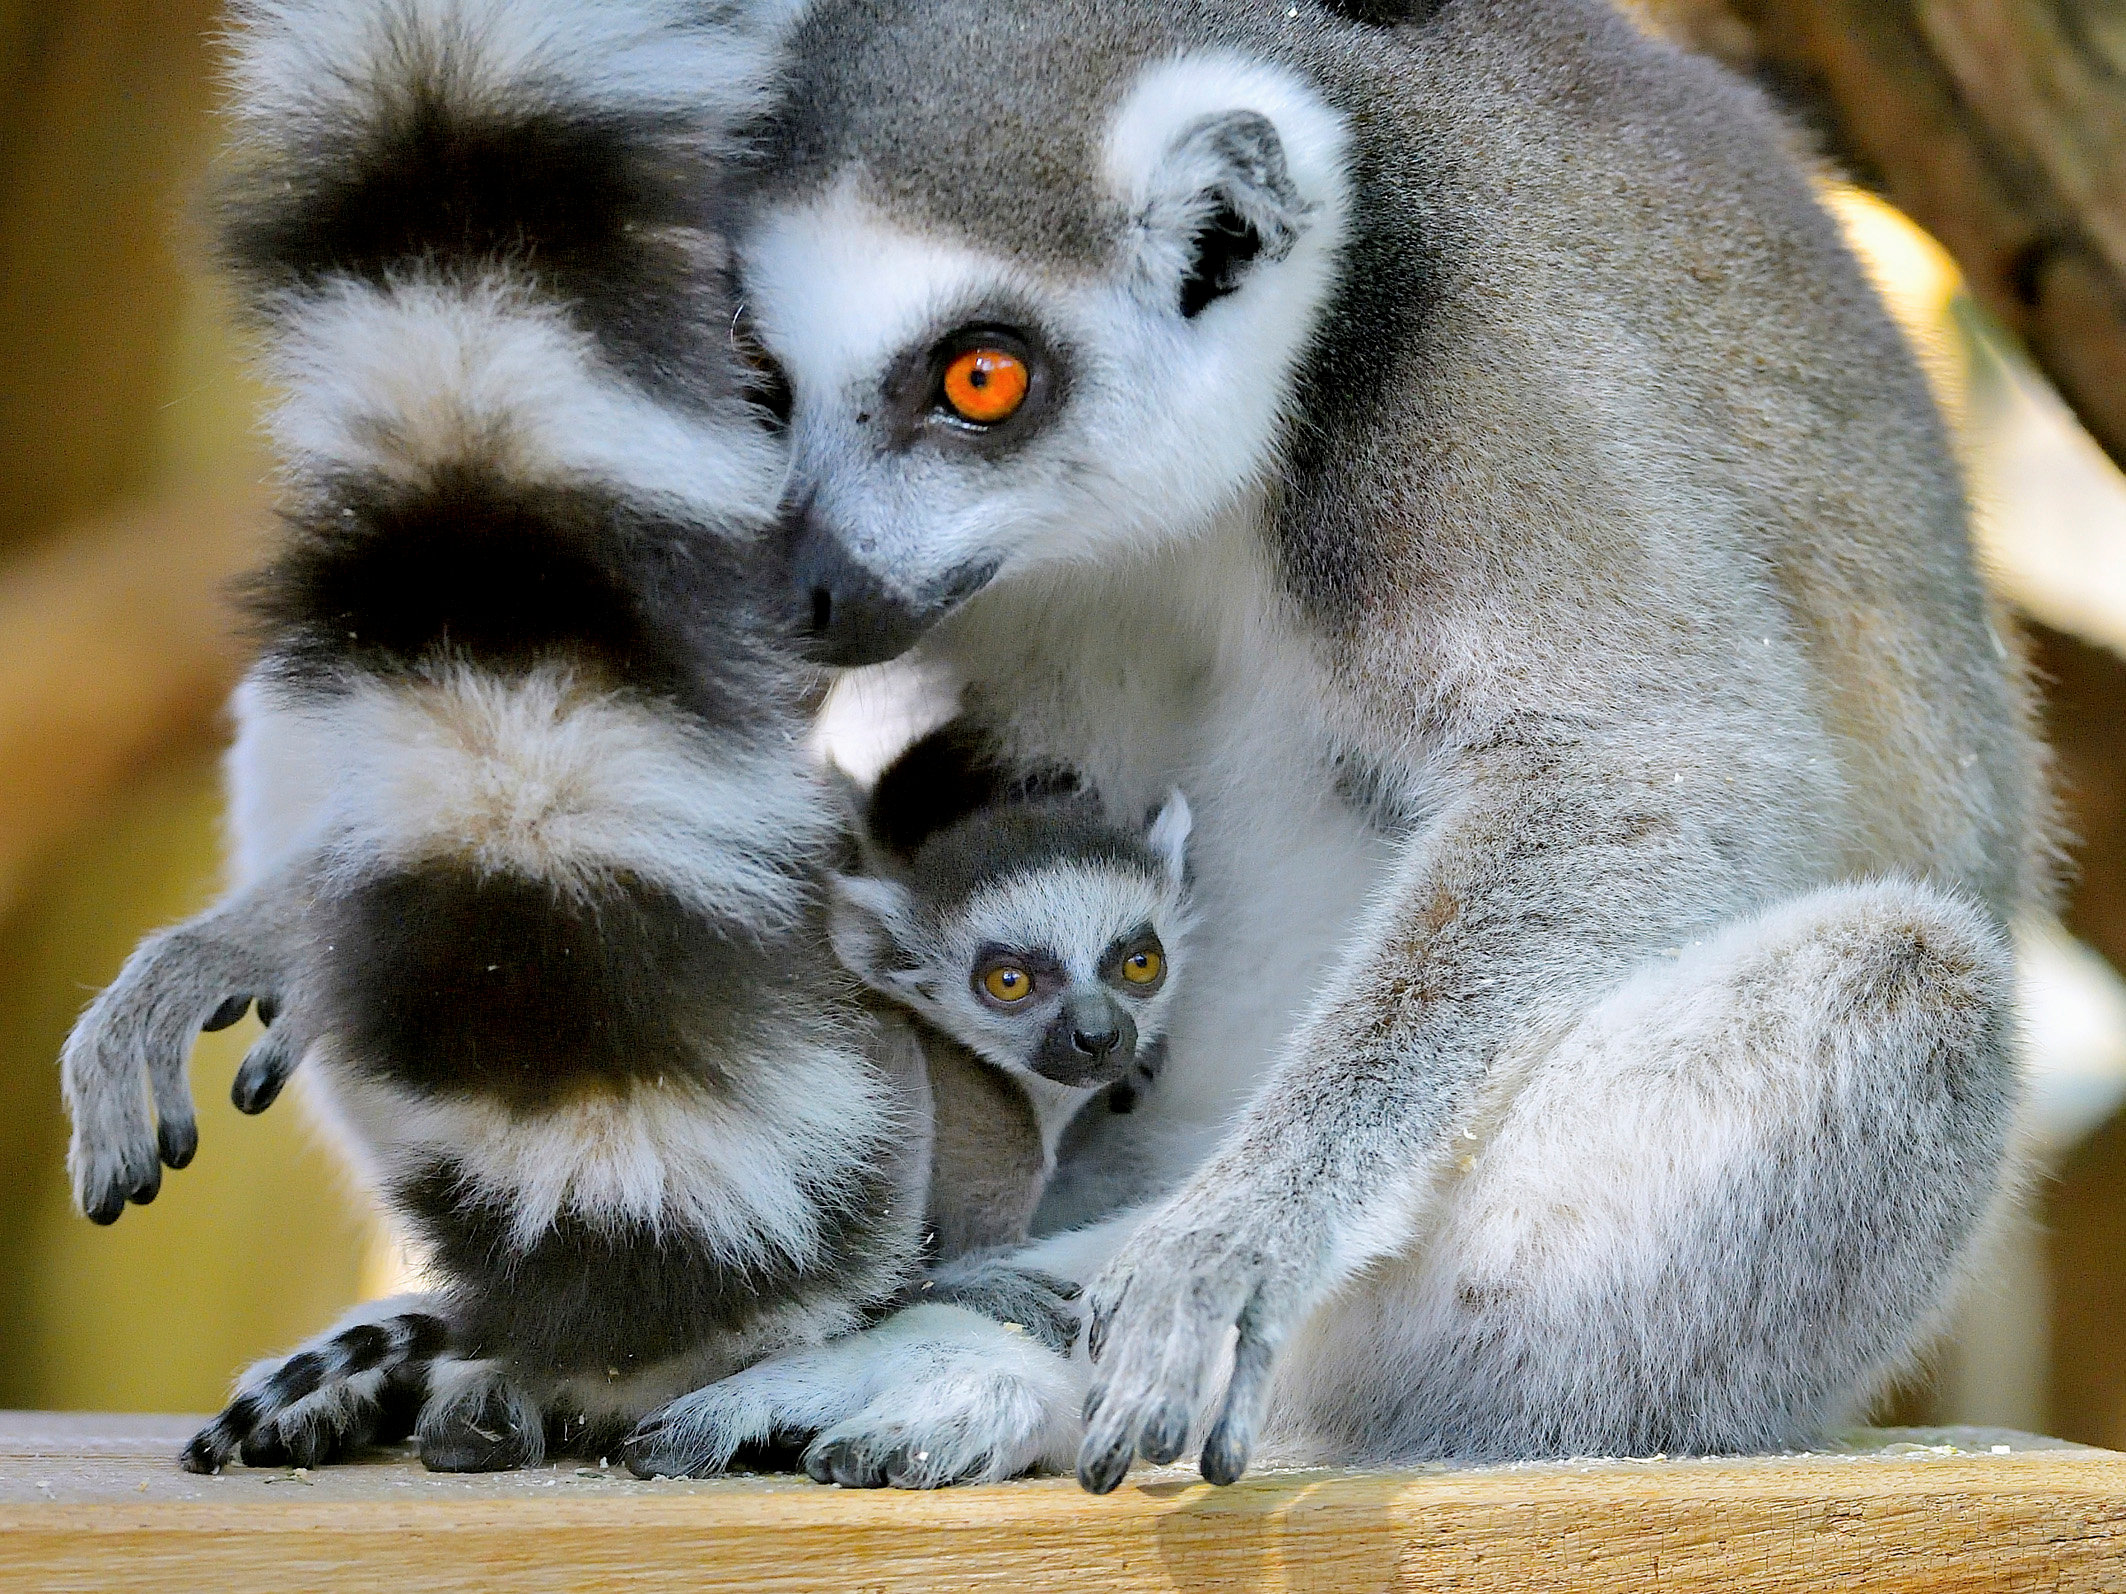 A Lemur catta cub, which was born on March 18, 2017, is seen with its mother in this handout photograph dated March 20, 2017, released on March 22, 2017, at Schoenbrunn Zoo in Vienna, Austria.REUTERS